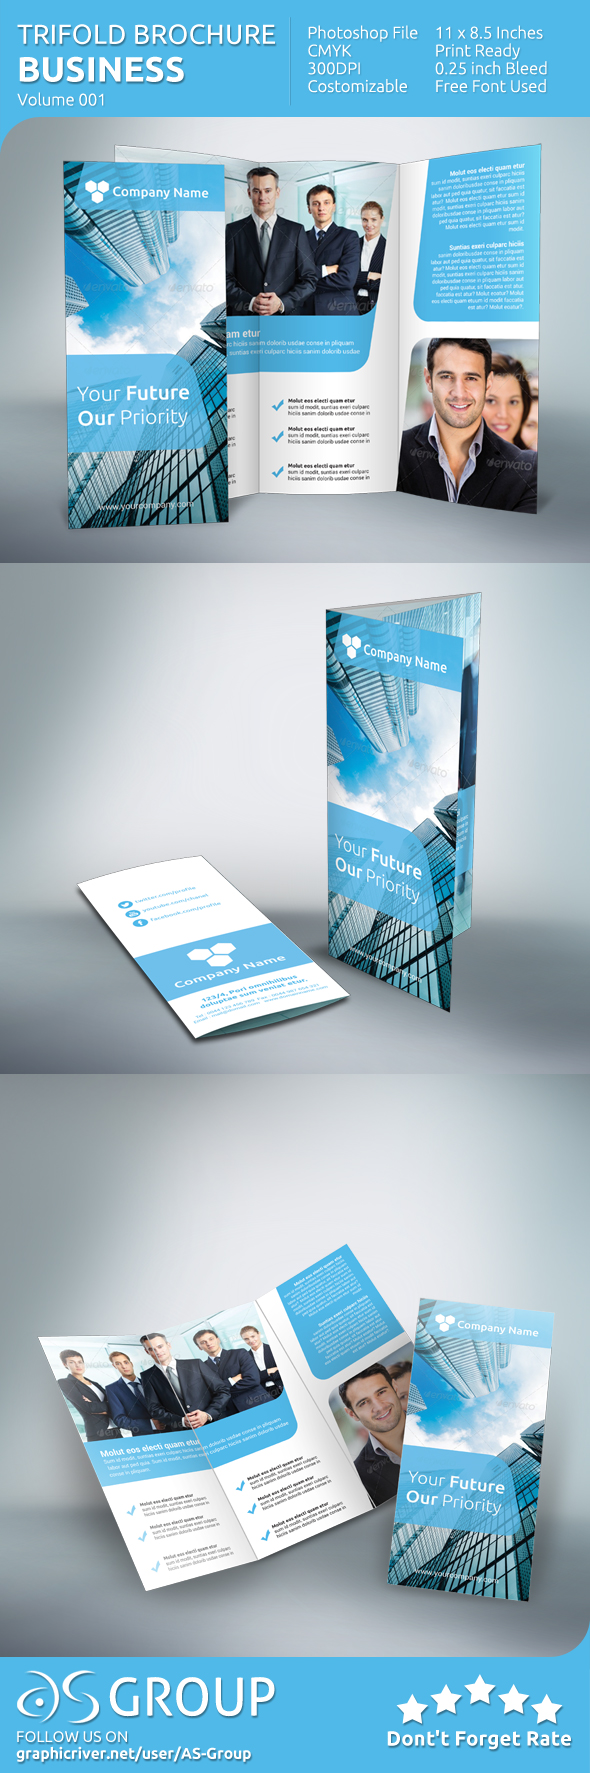 business_tri-fold-brochure-v001-preview